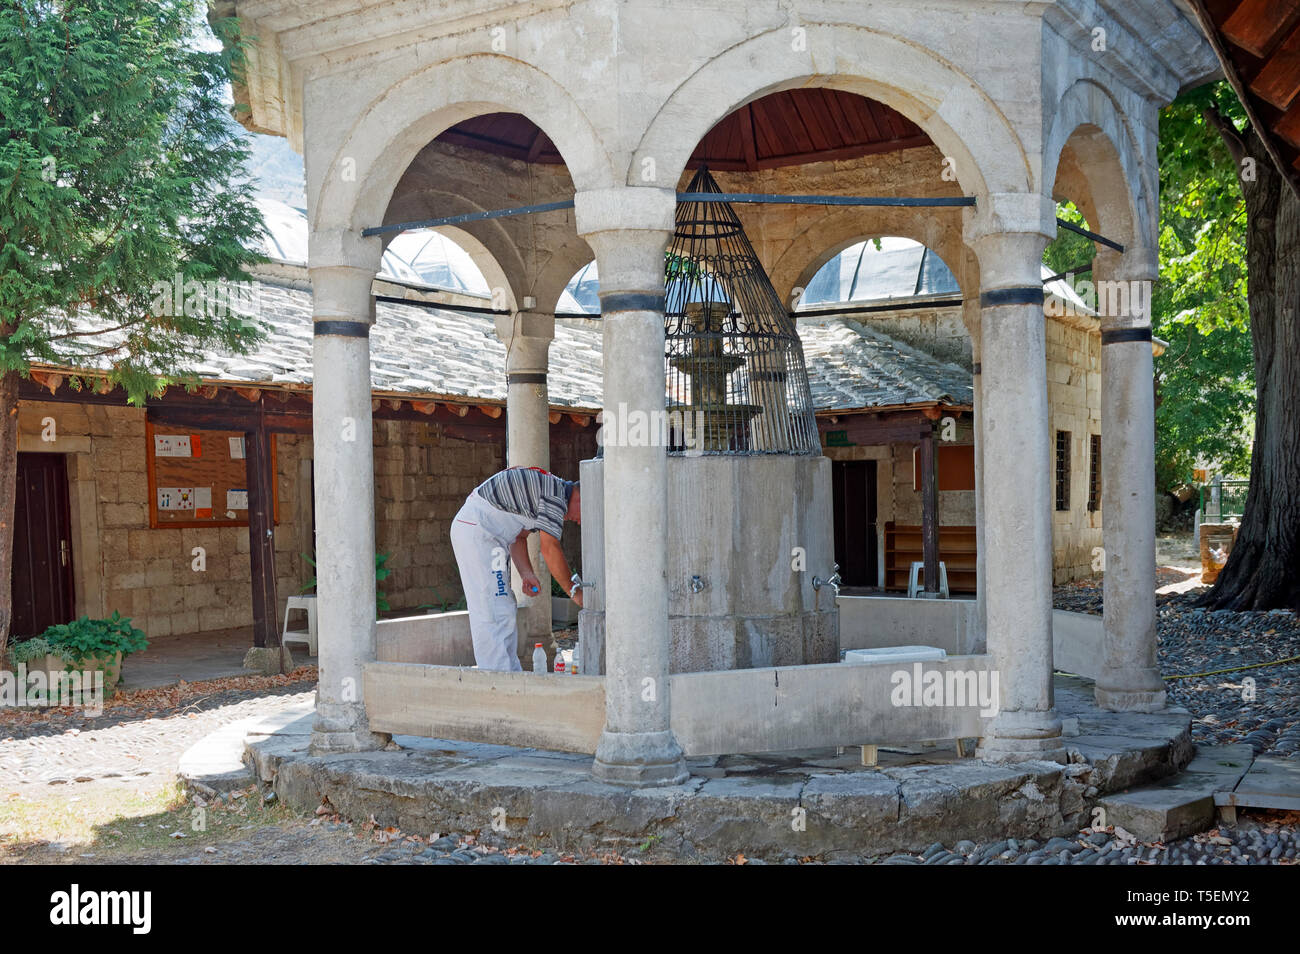 old stone ablutions fountain; mosque; workman filling bottles, religious building, Muslim, Mostar; Bosnia Herzegovina; Europe; summer, horizontal - Stock Image